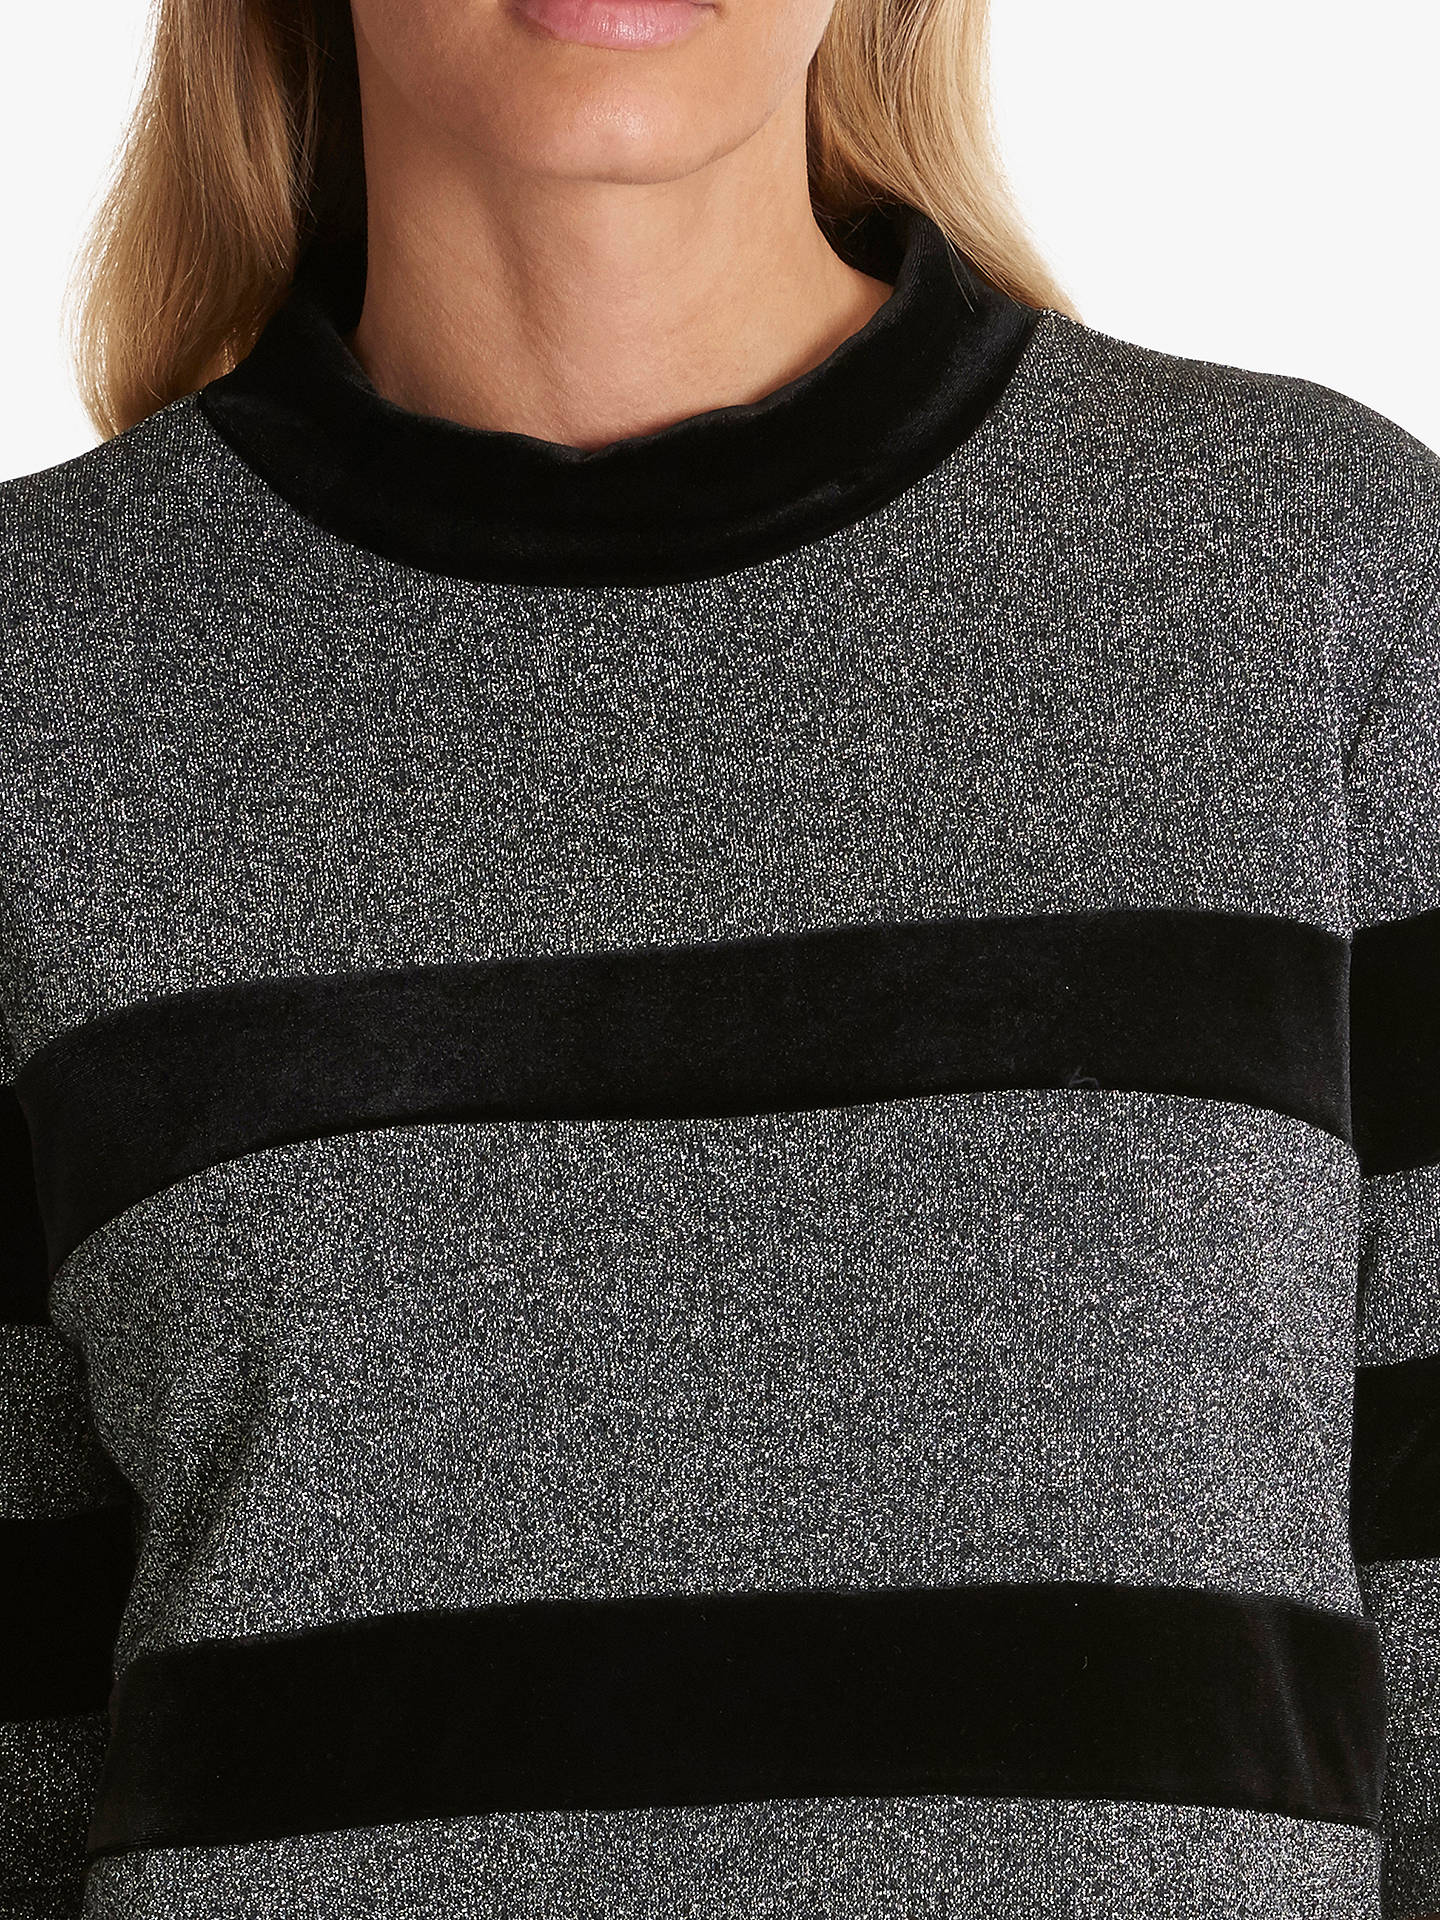 BuyBetty Barclay Metallic Large Stripe Top, Silver/Black, 10 Online at johnlewis.com